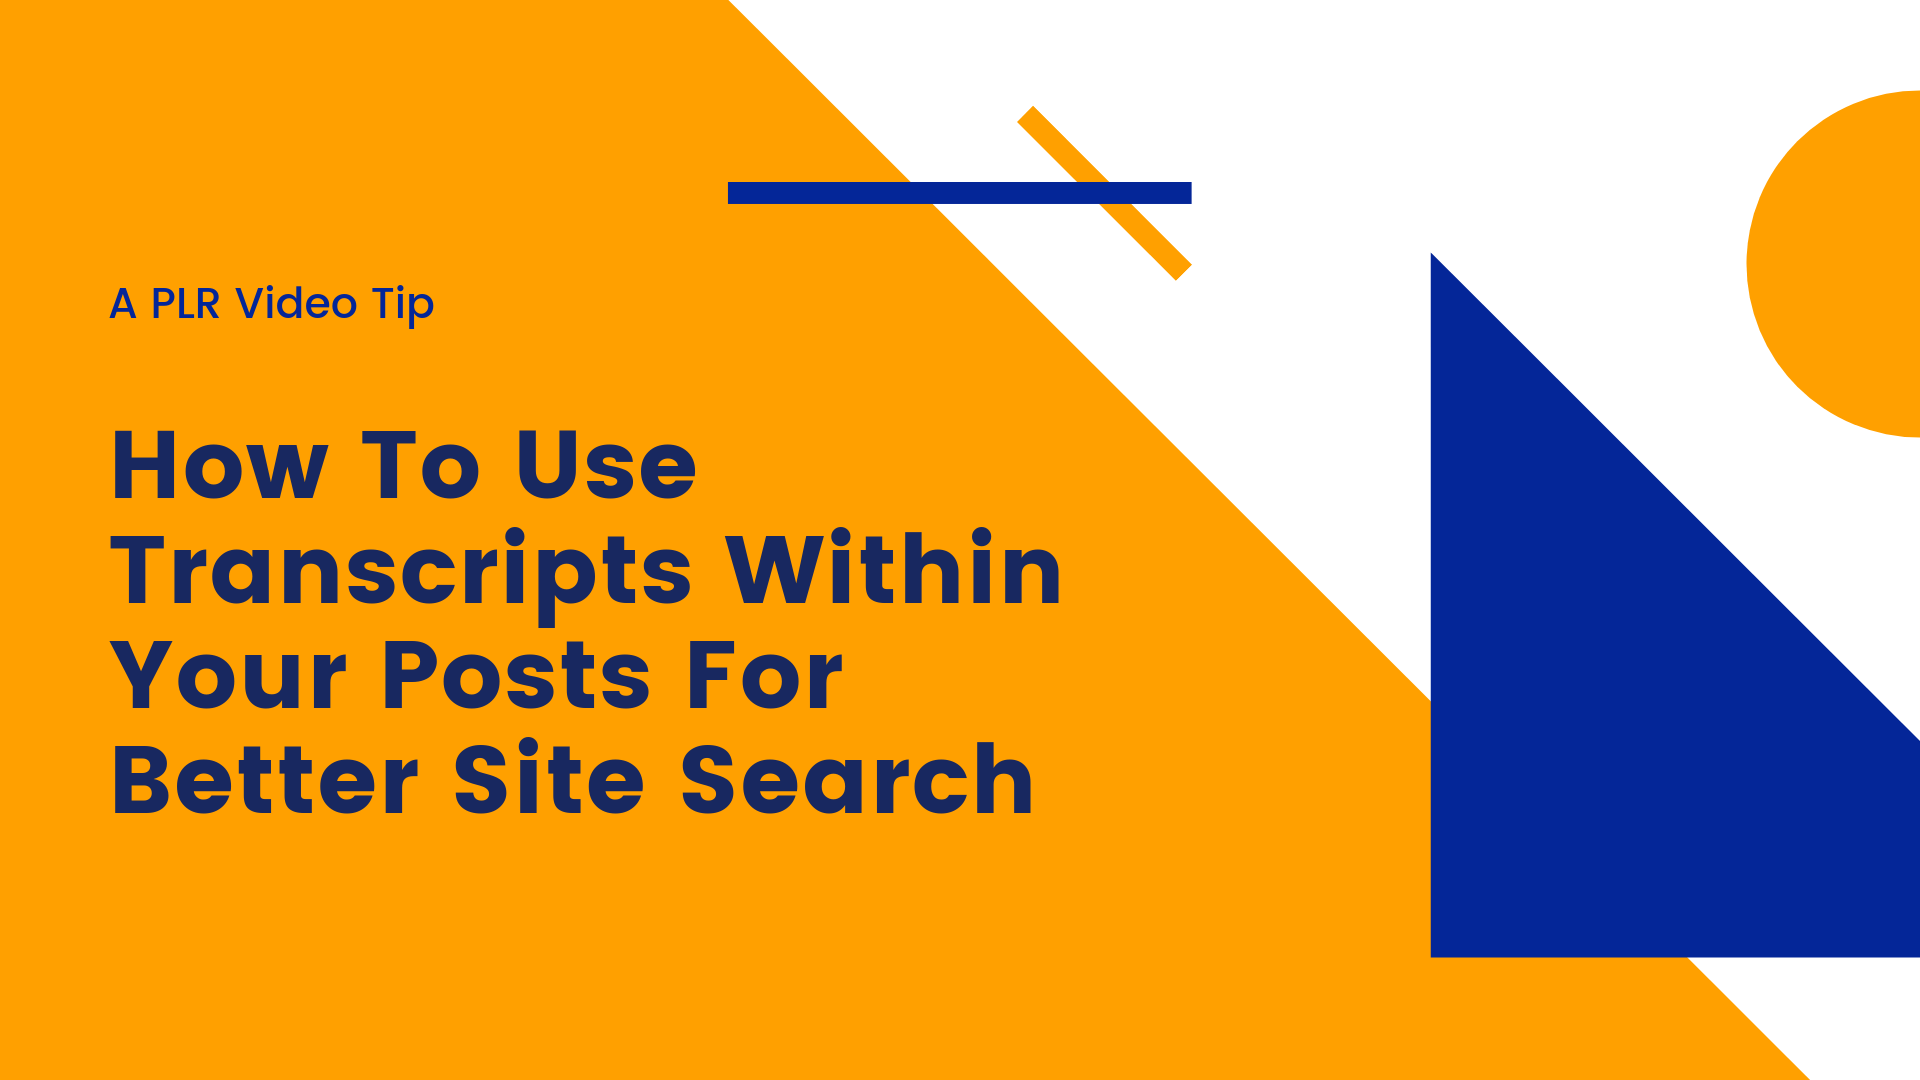 Transcripts For Better Site Search-A PLR Video Tip